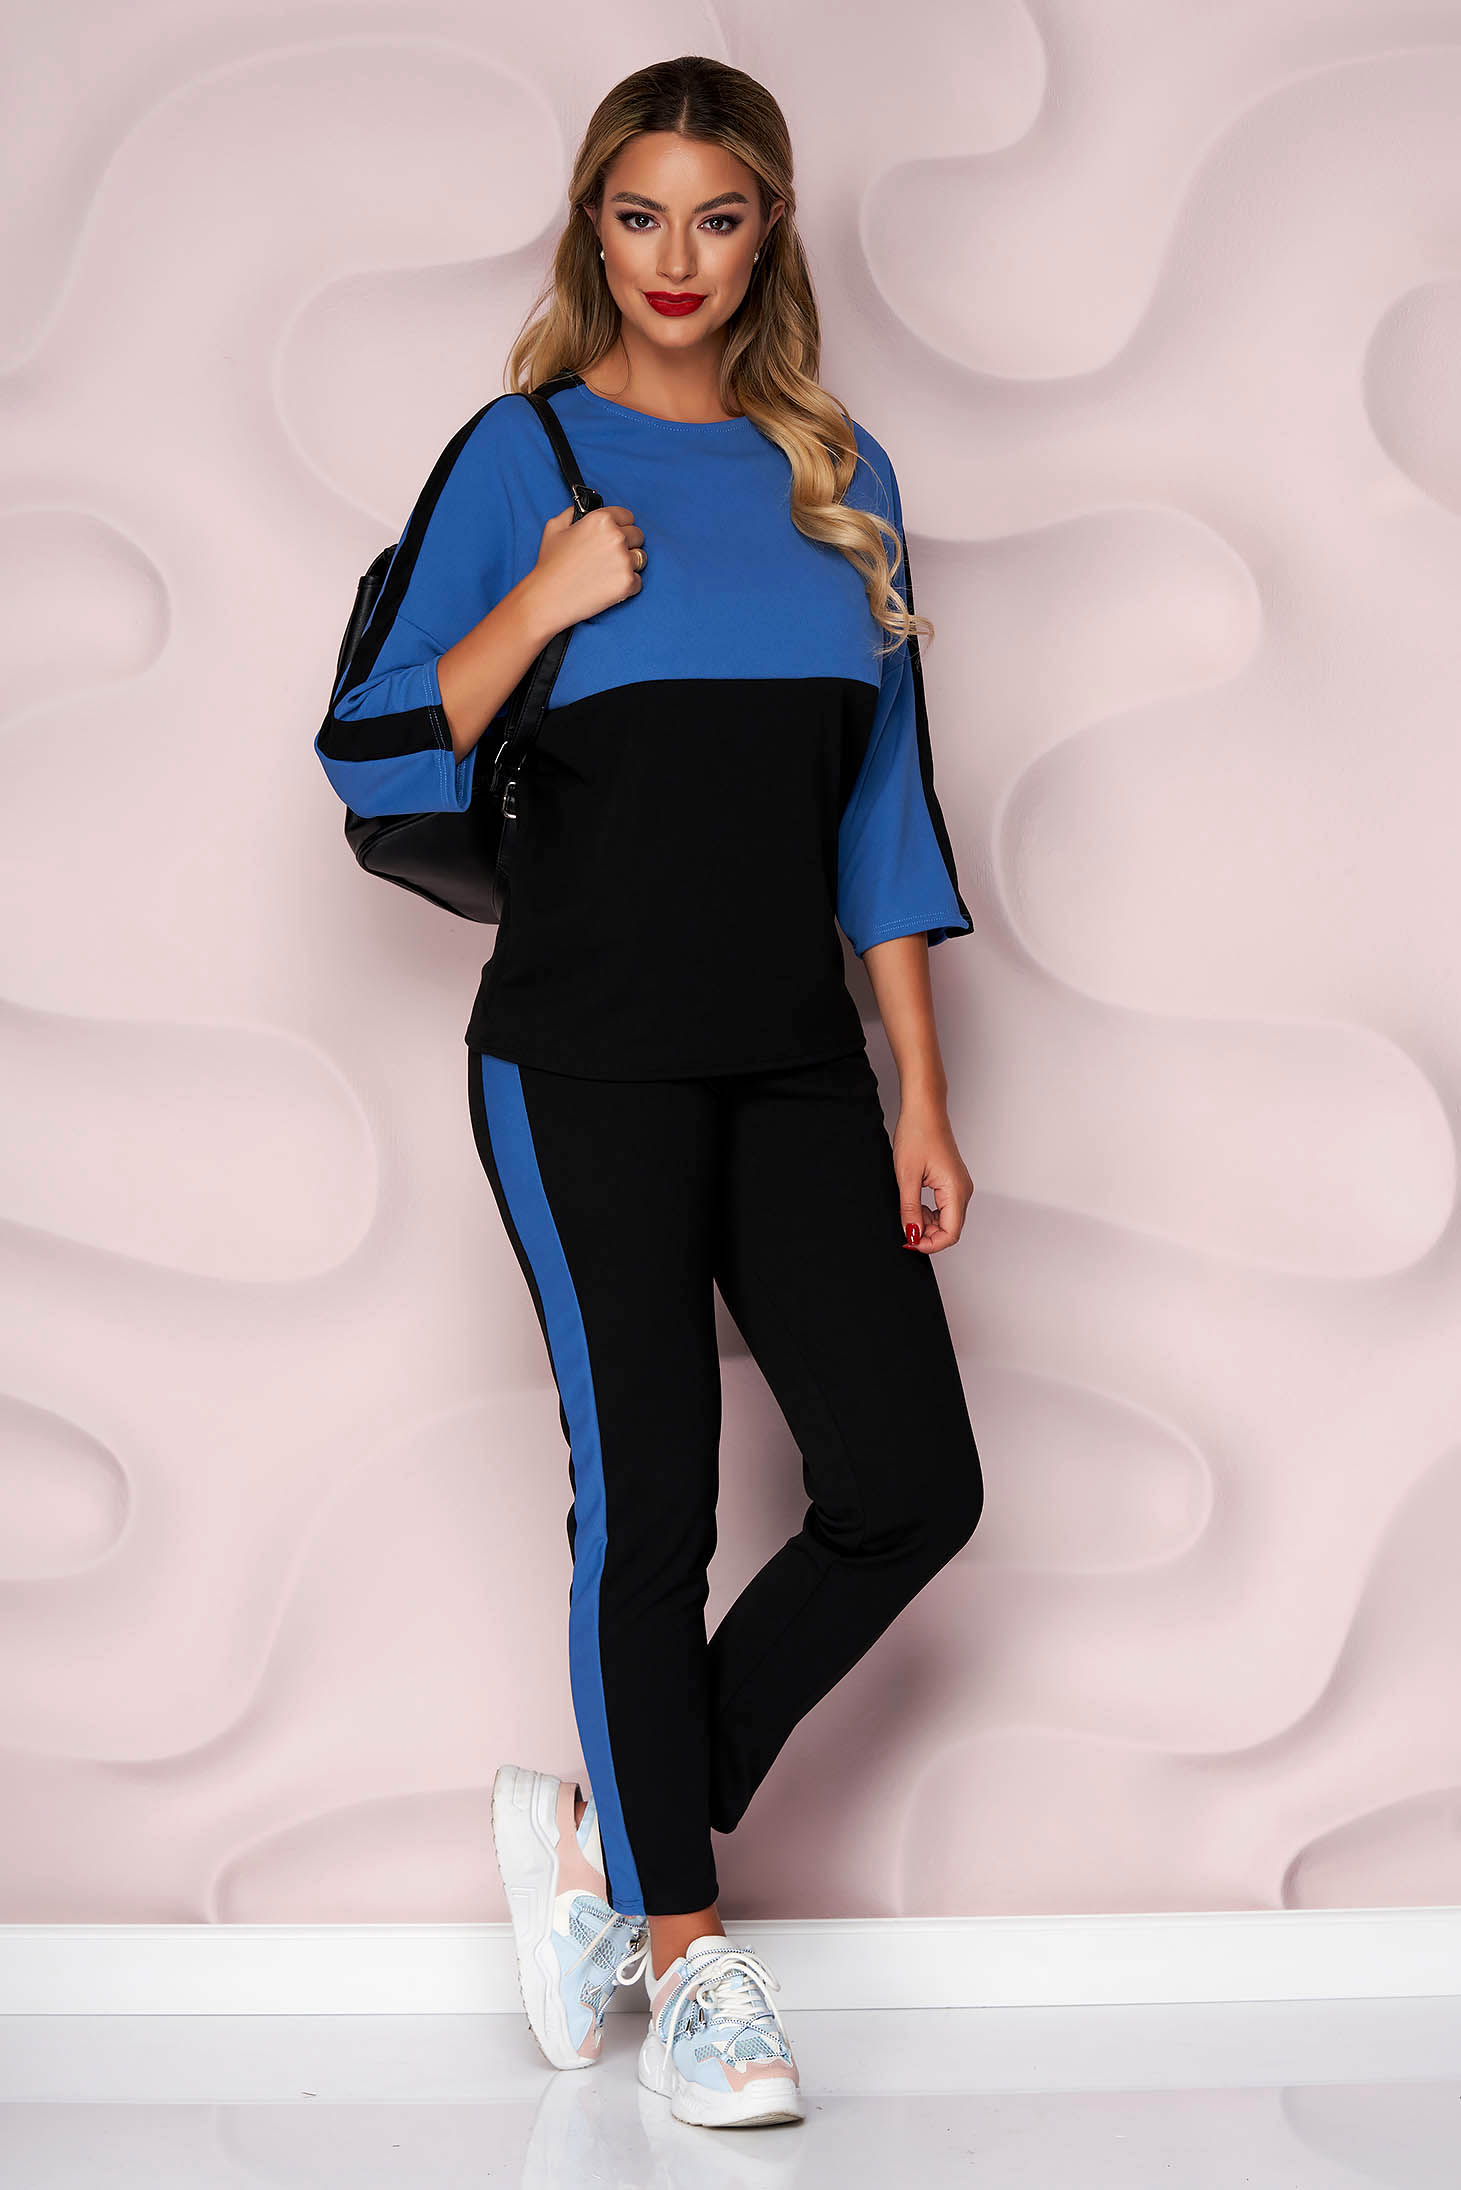 Blue sport 2 pieces loose fit medium waist with pockets